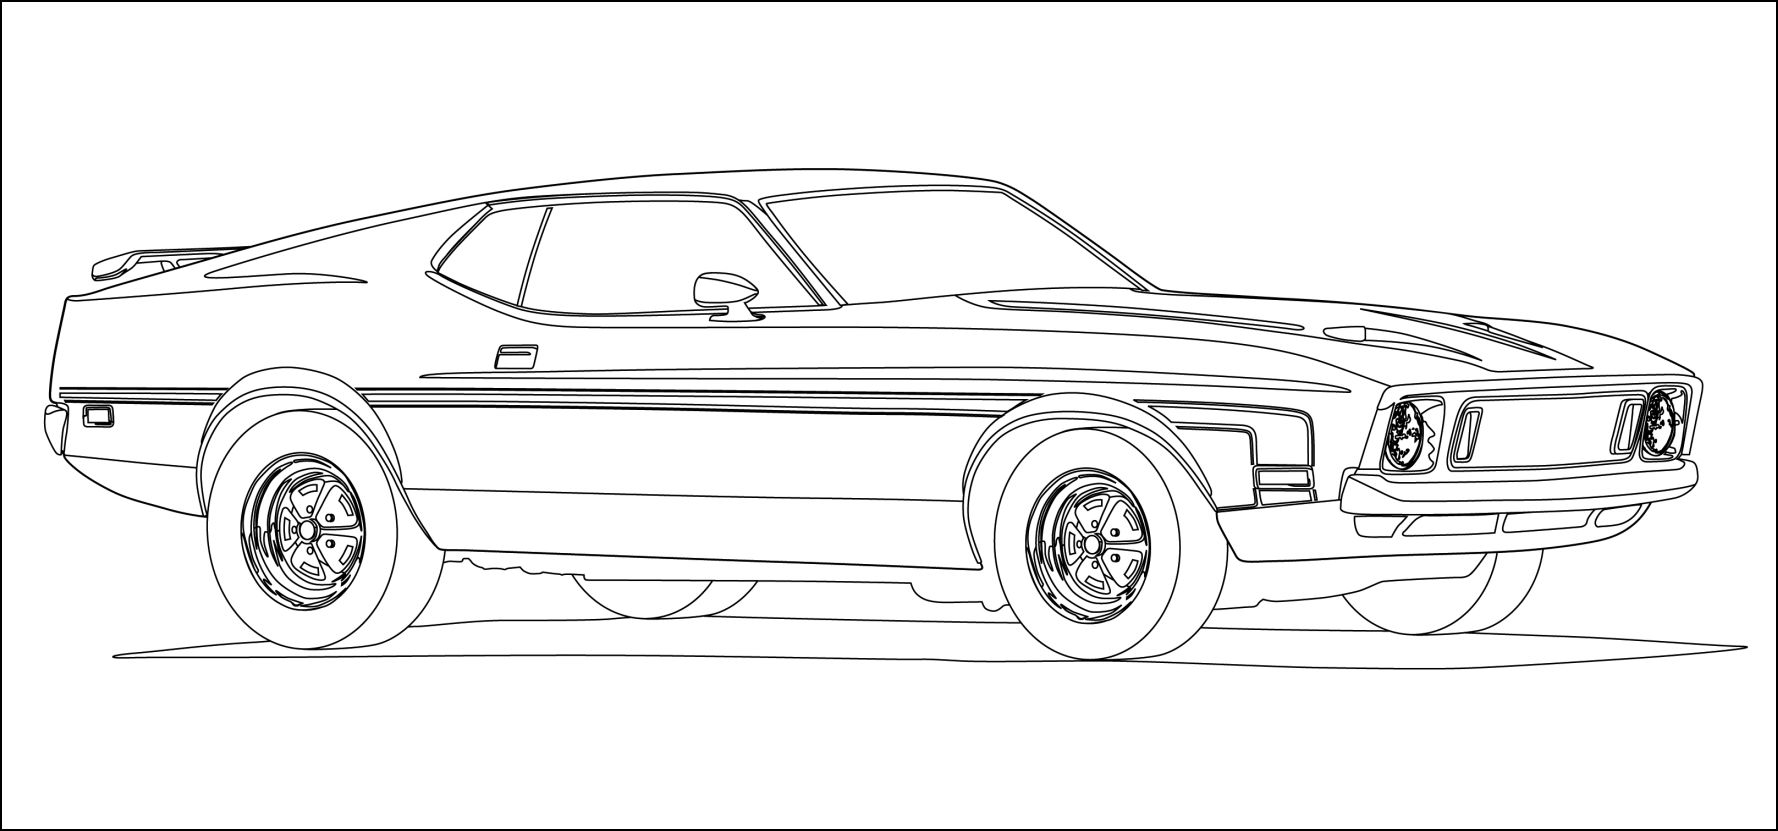 2011-Ford-Mustang-Coloring-Pages-01